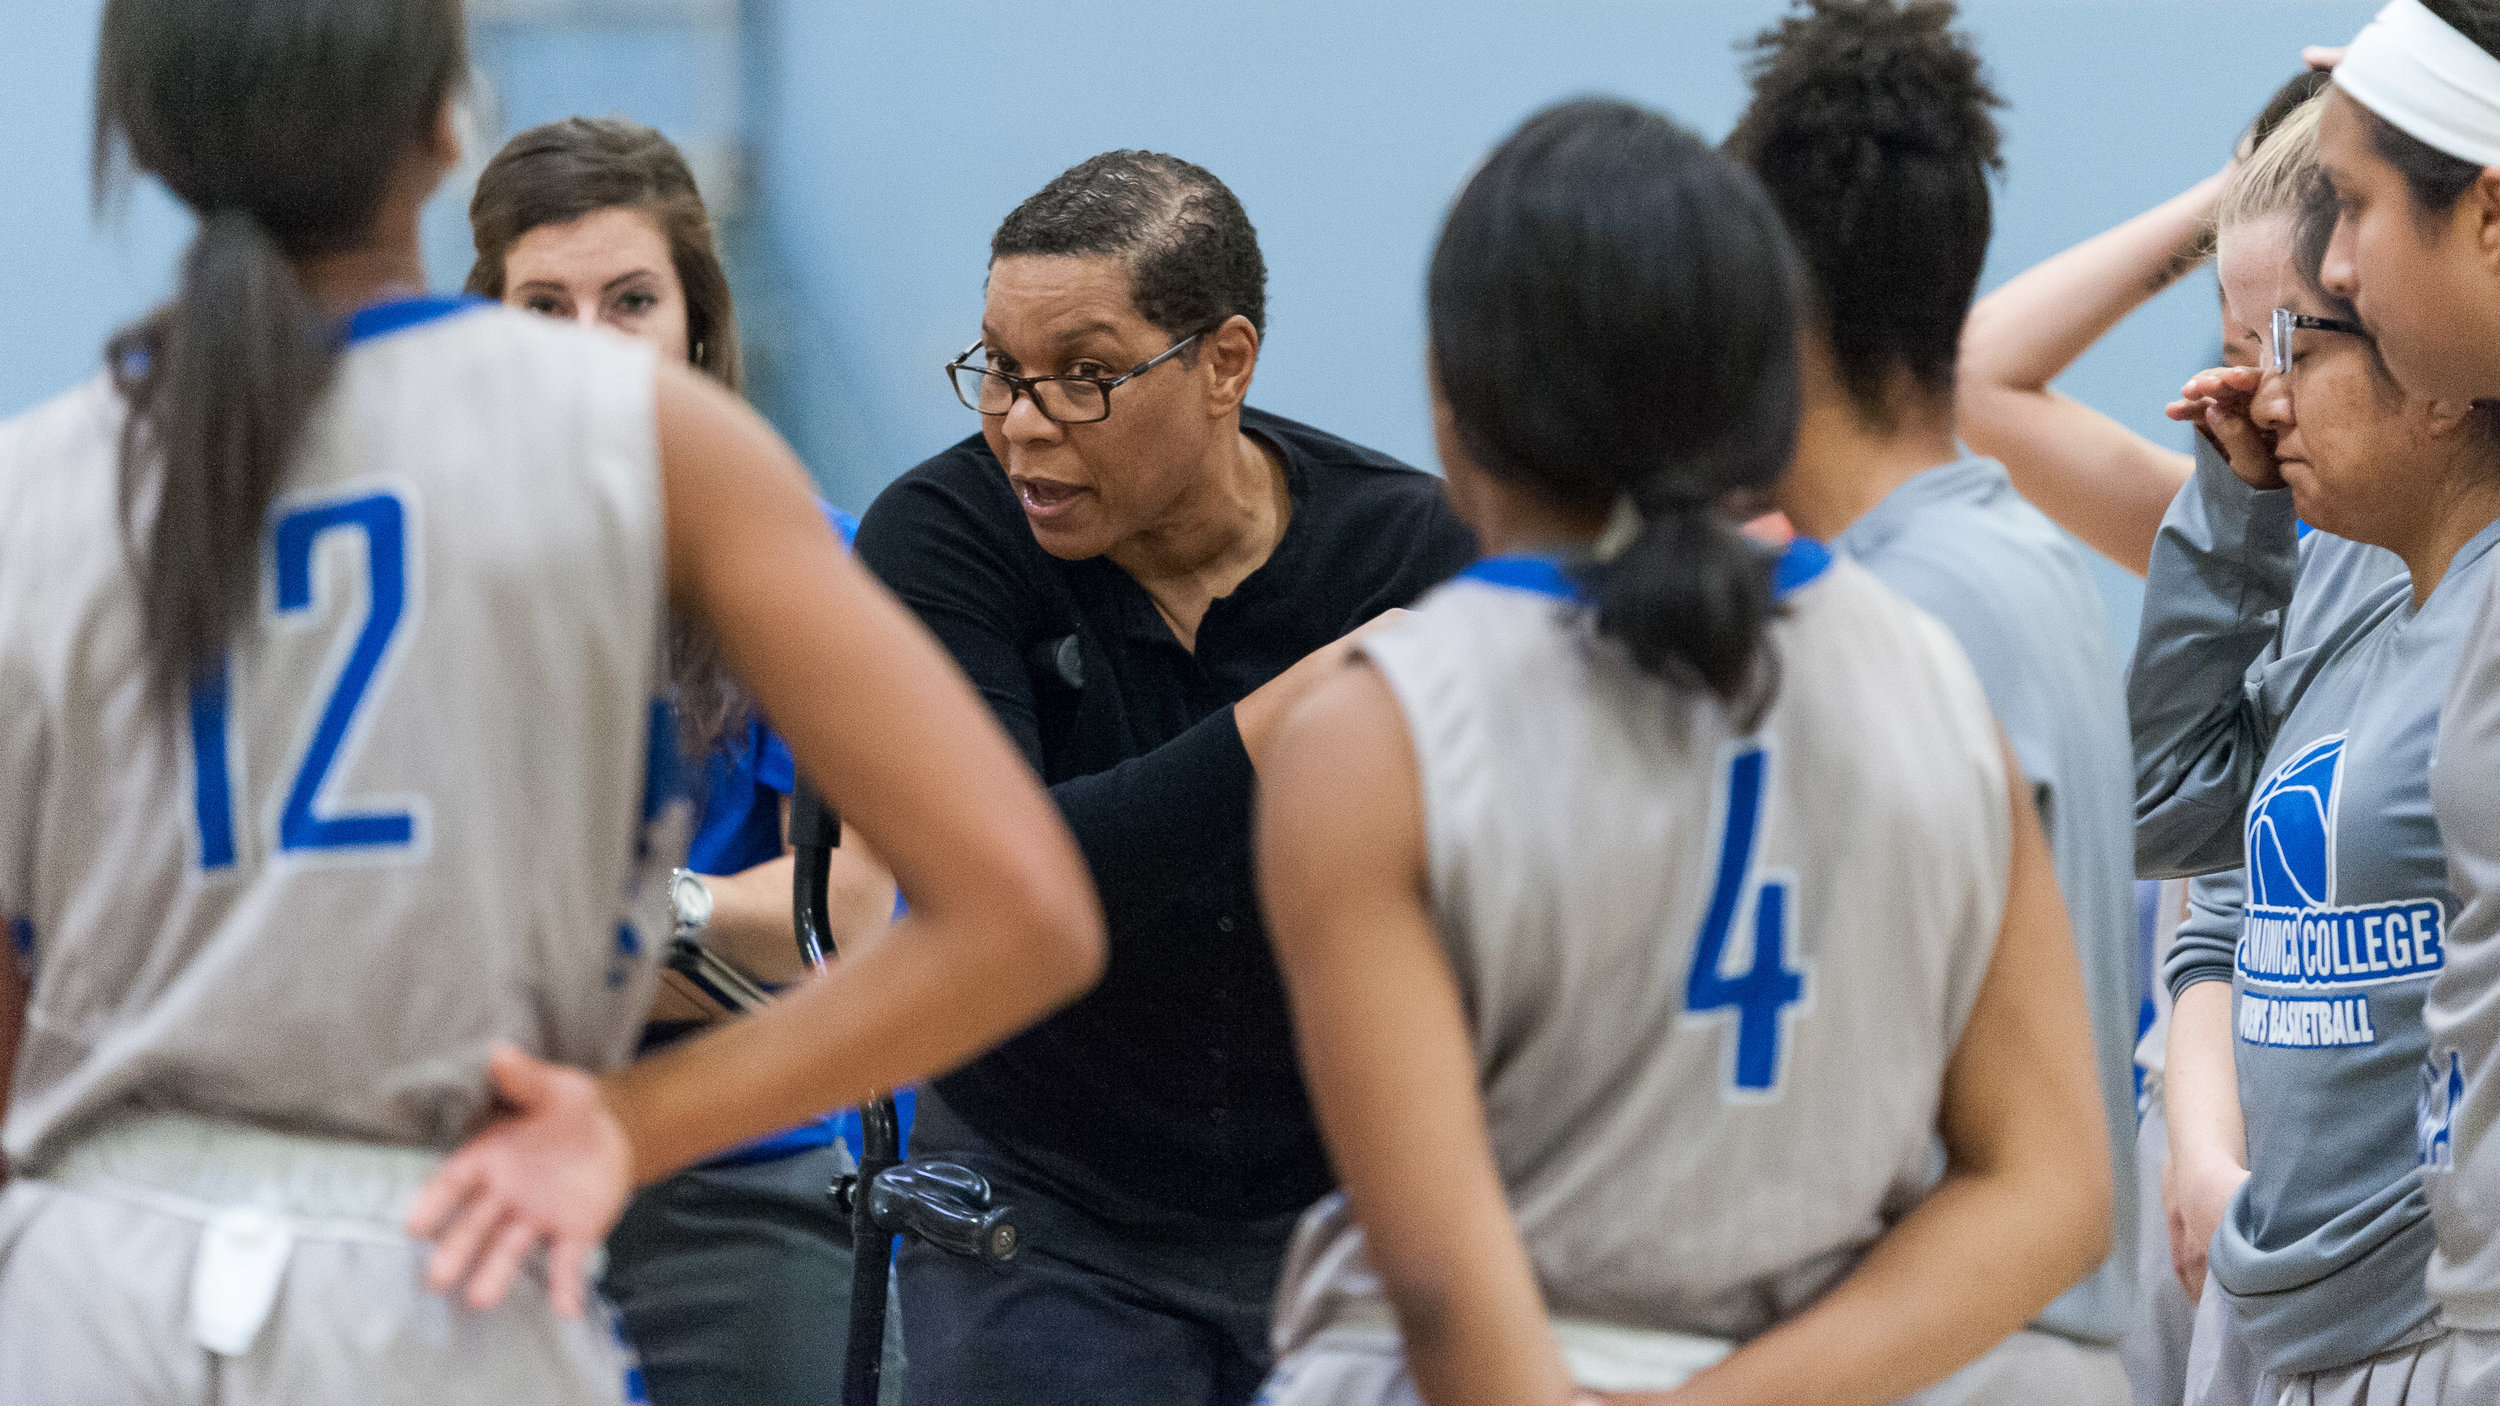 Lydia Strong (Center), Head Coach of the Santa Monica College Women's Basketball Team, tells her team to make a final run during the last few minutes of action. The Santa Monica College Corsairs lose the game 52-69 to the Moorpark College Raiders. The game was held at the SMC Pavilion at the Santa Monica College Main Campus in Santa Monica, Calif.. December 9, 2017. (Photo by: Justin Han/Corsair Staff)